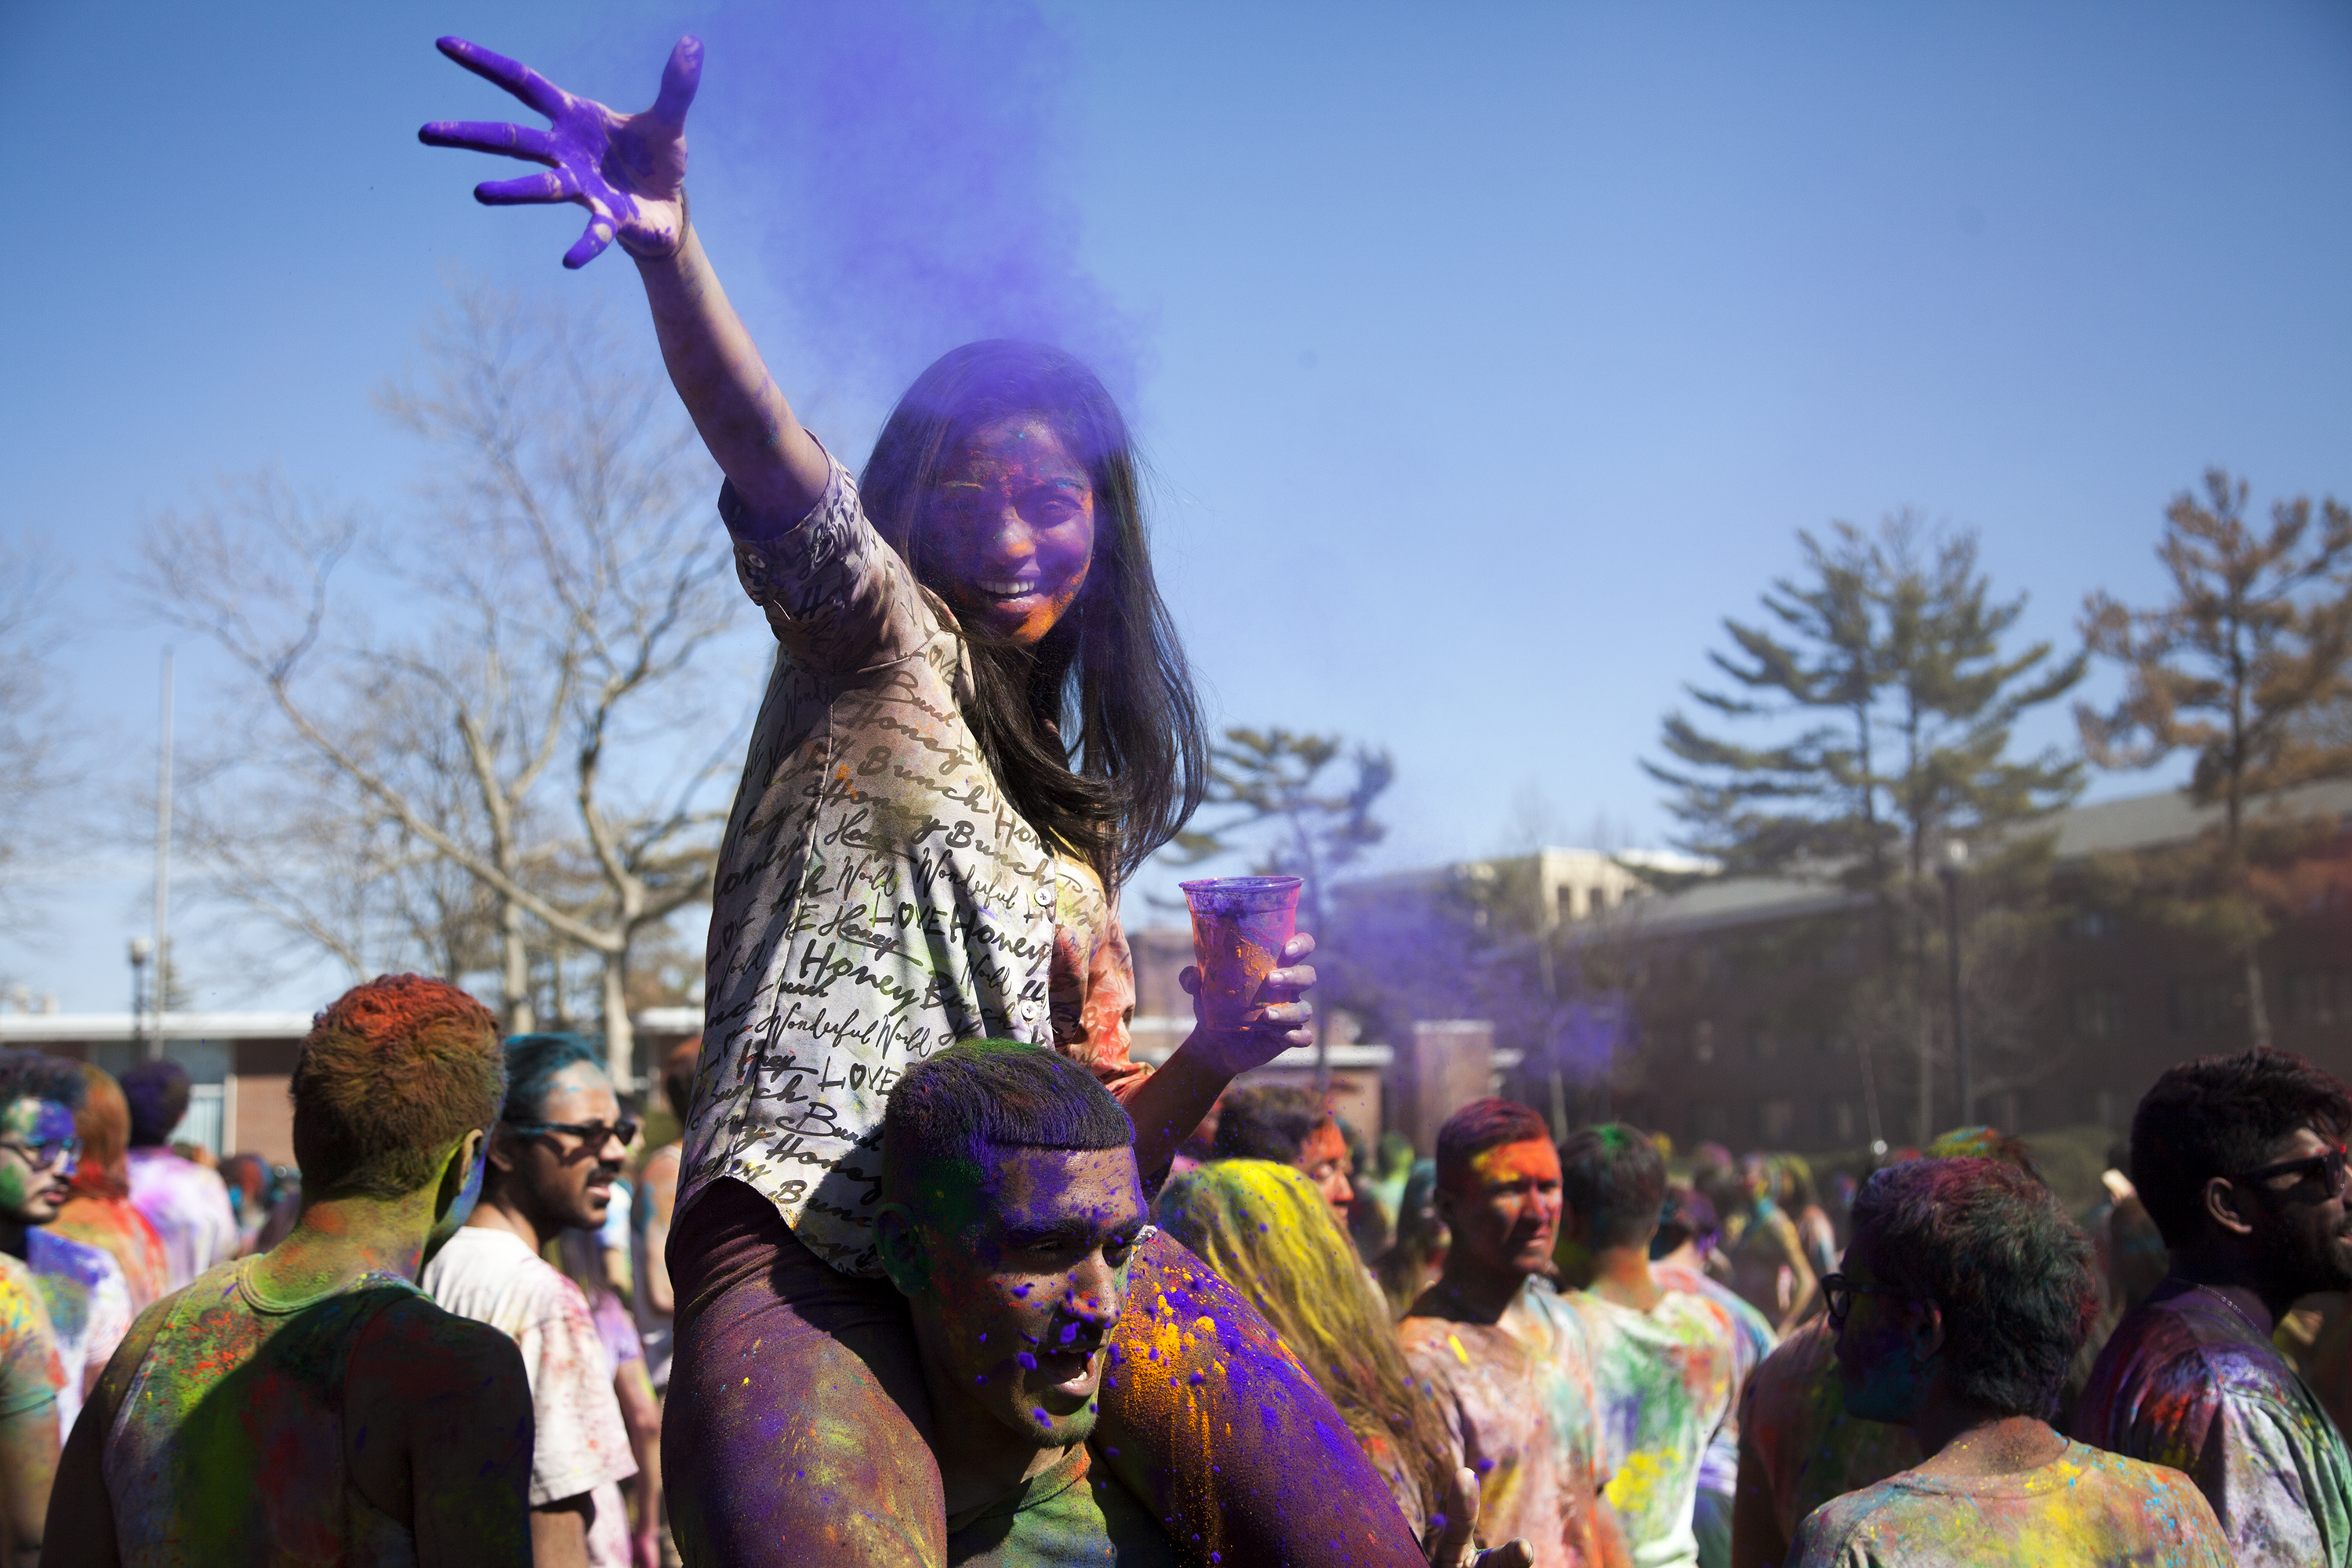 Aiswaria George, above, threw purple powder over the crowd while on Shadman Alam's shoulders at Holi on Sunday. ERIC SCHMID/THE STATESMAN